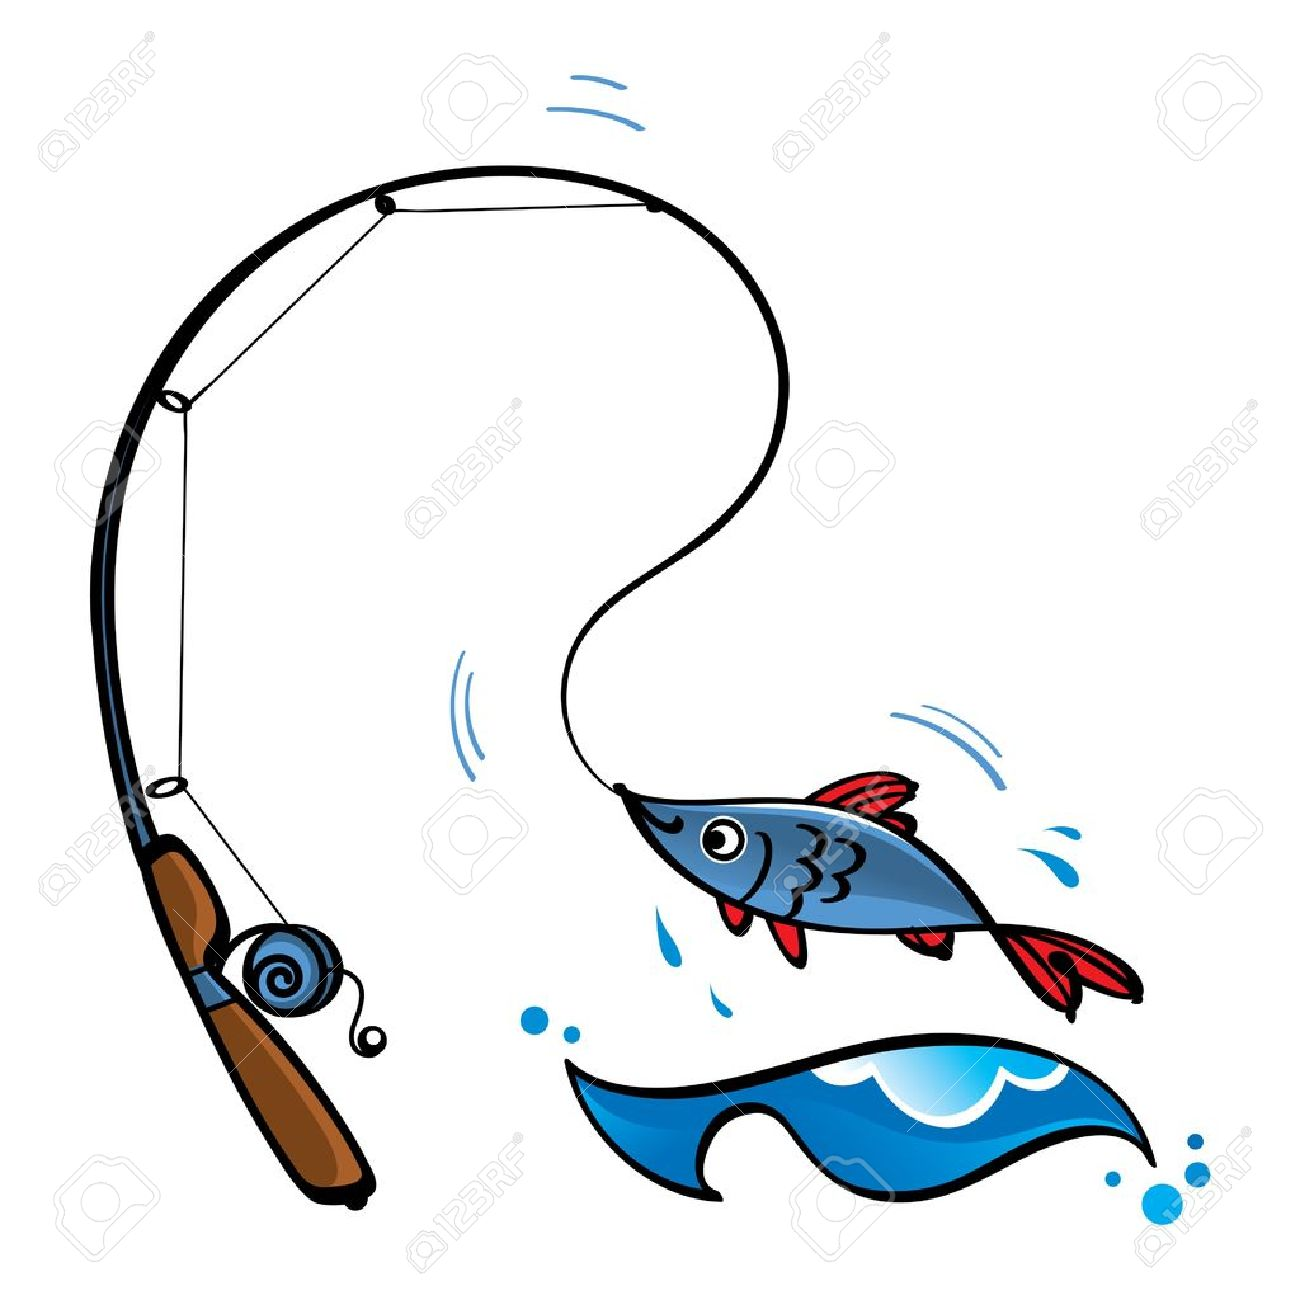 8,583 Fishing Rod Stock Vector Illustration And Royalty Free ...